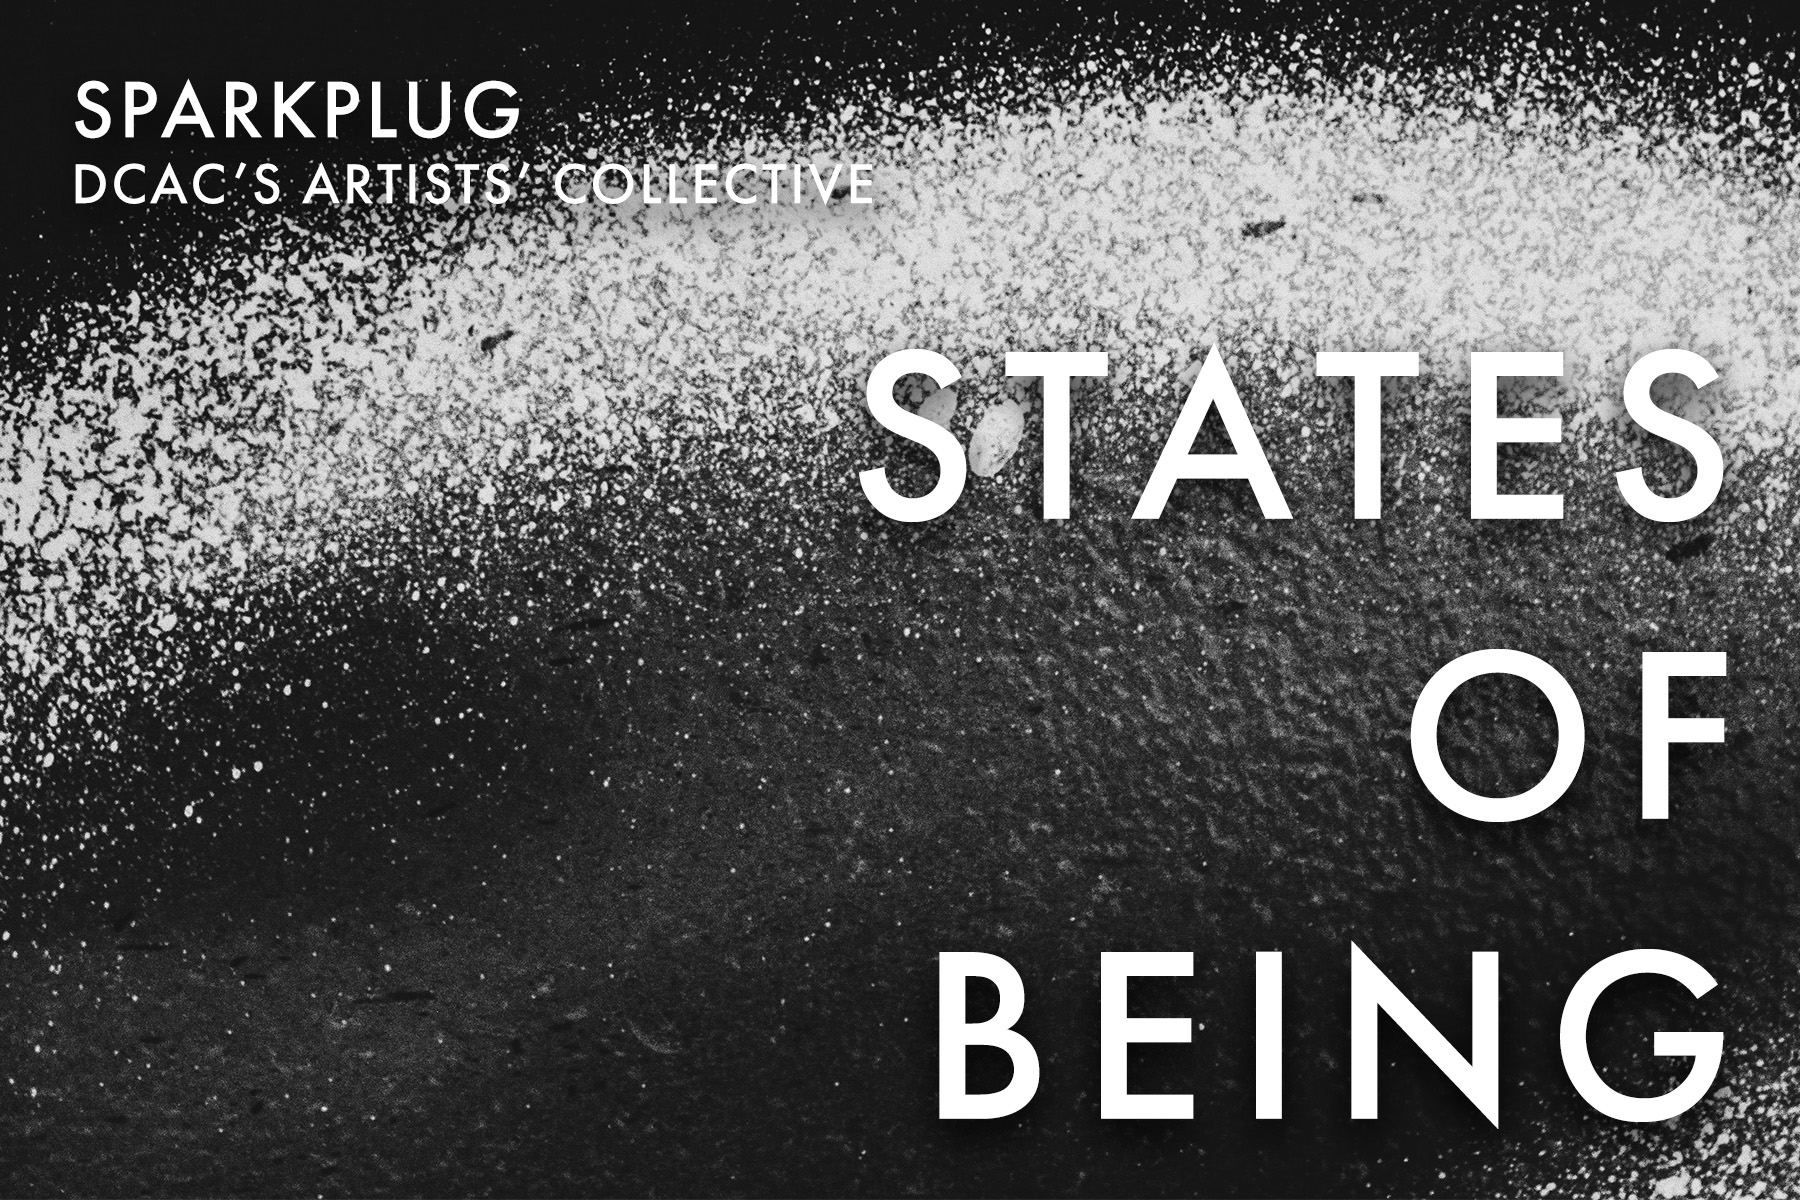 Sparkplug: STATES OF BEING,  <br> November 14, 2020 - January 10, 2021 <br> ***Extended to February 7th***